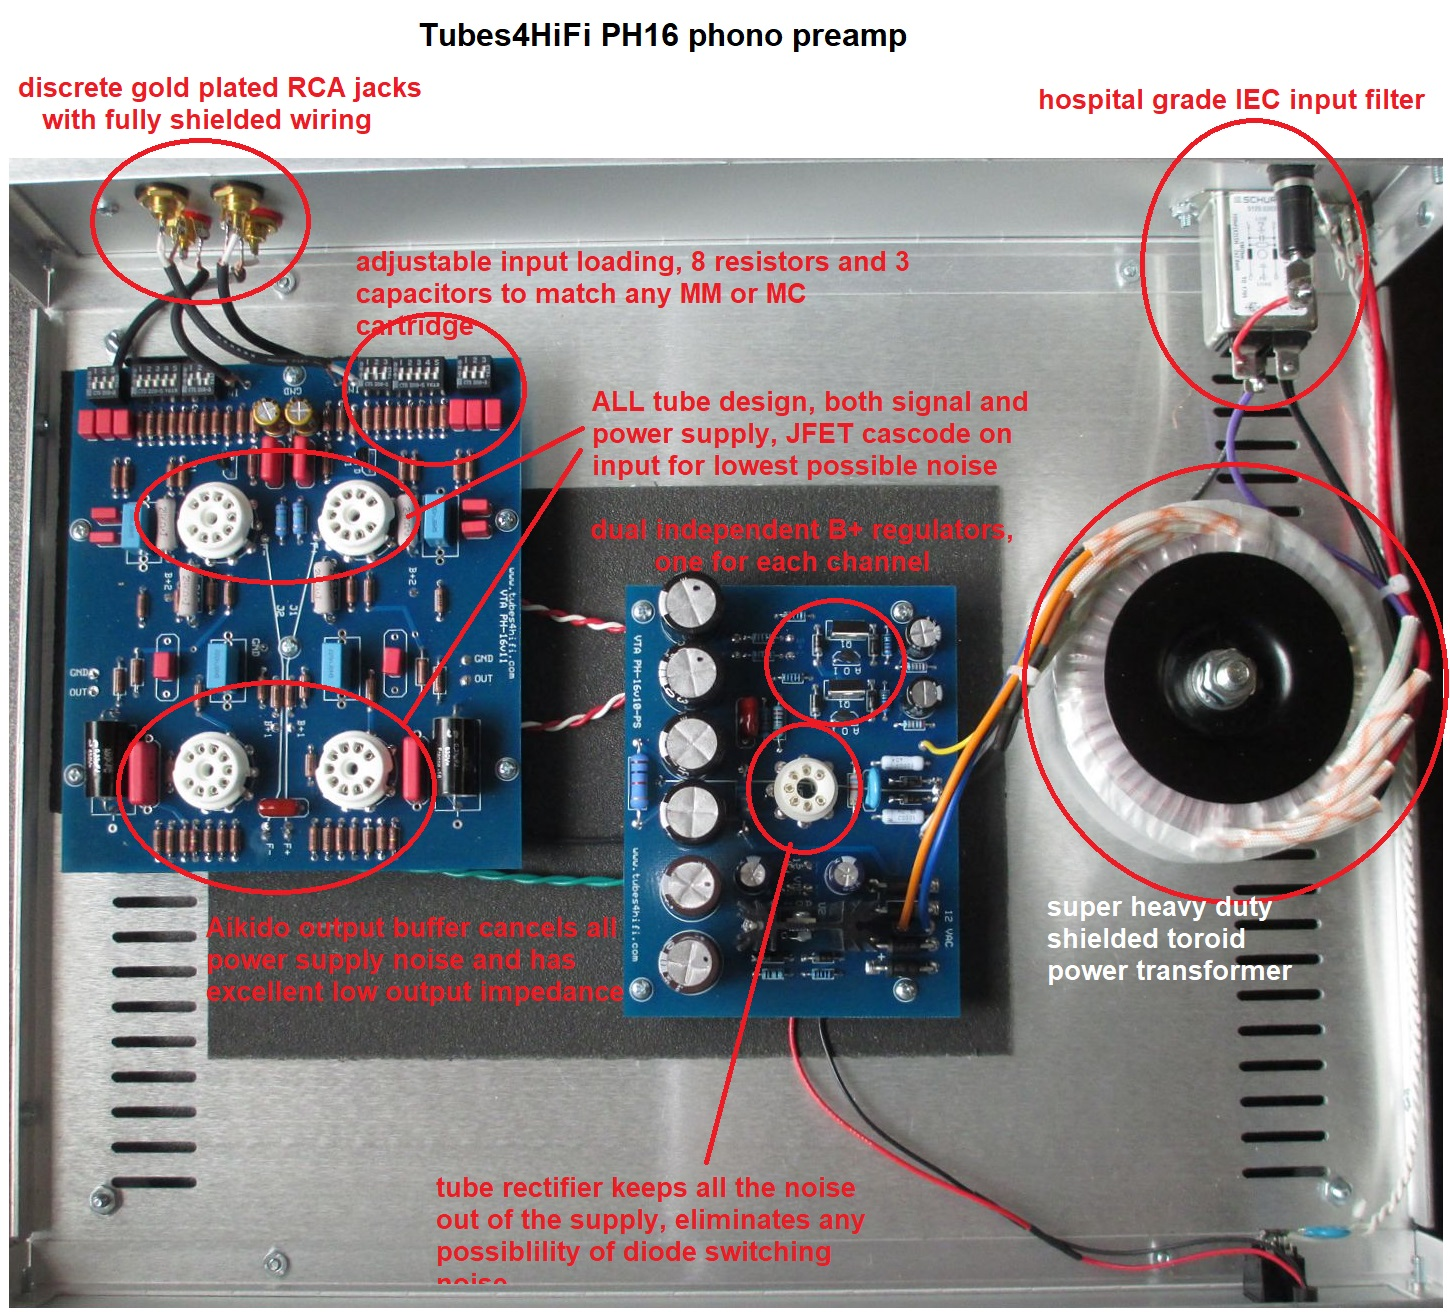 a $5000 preamp for $1350